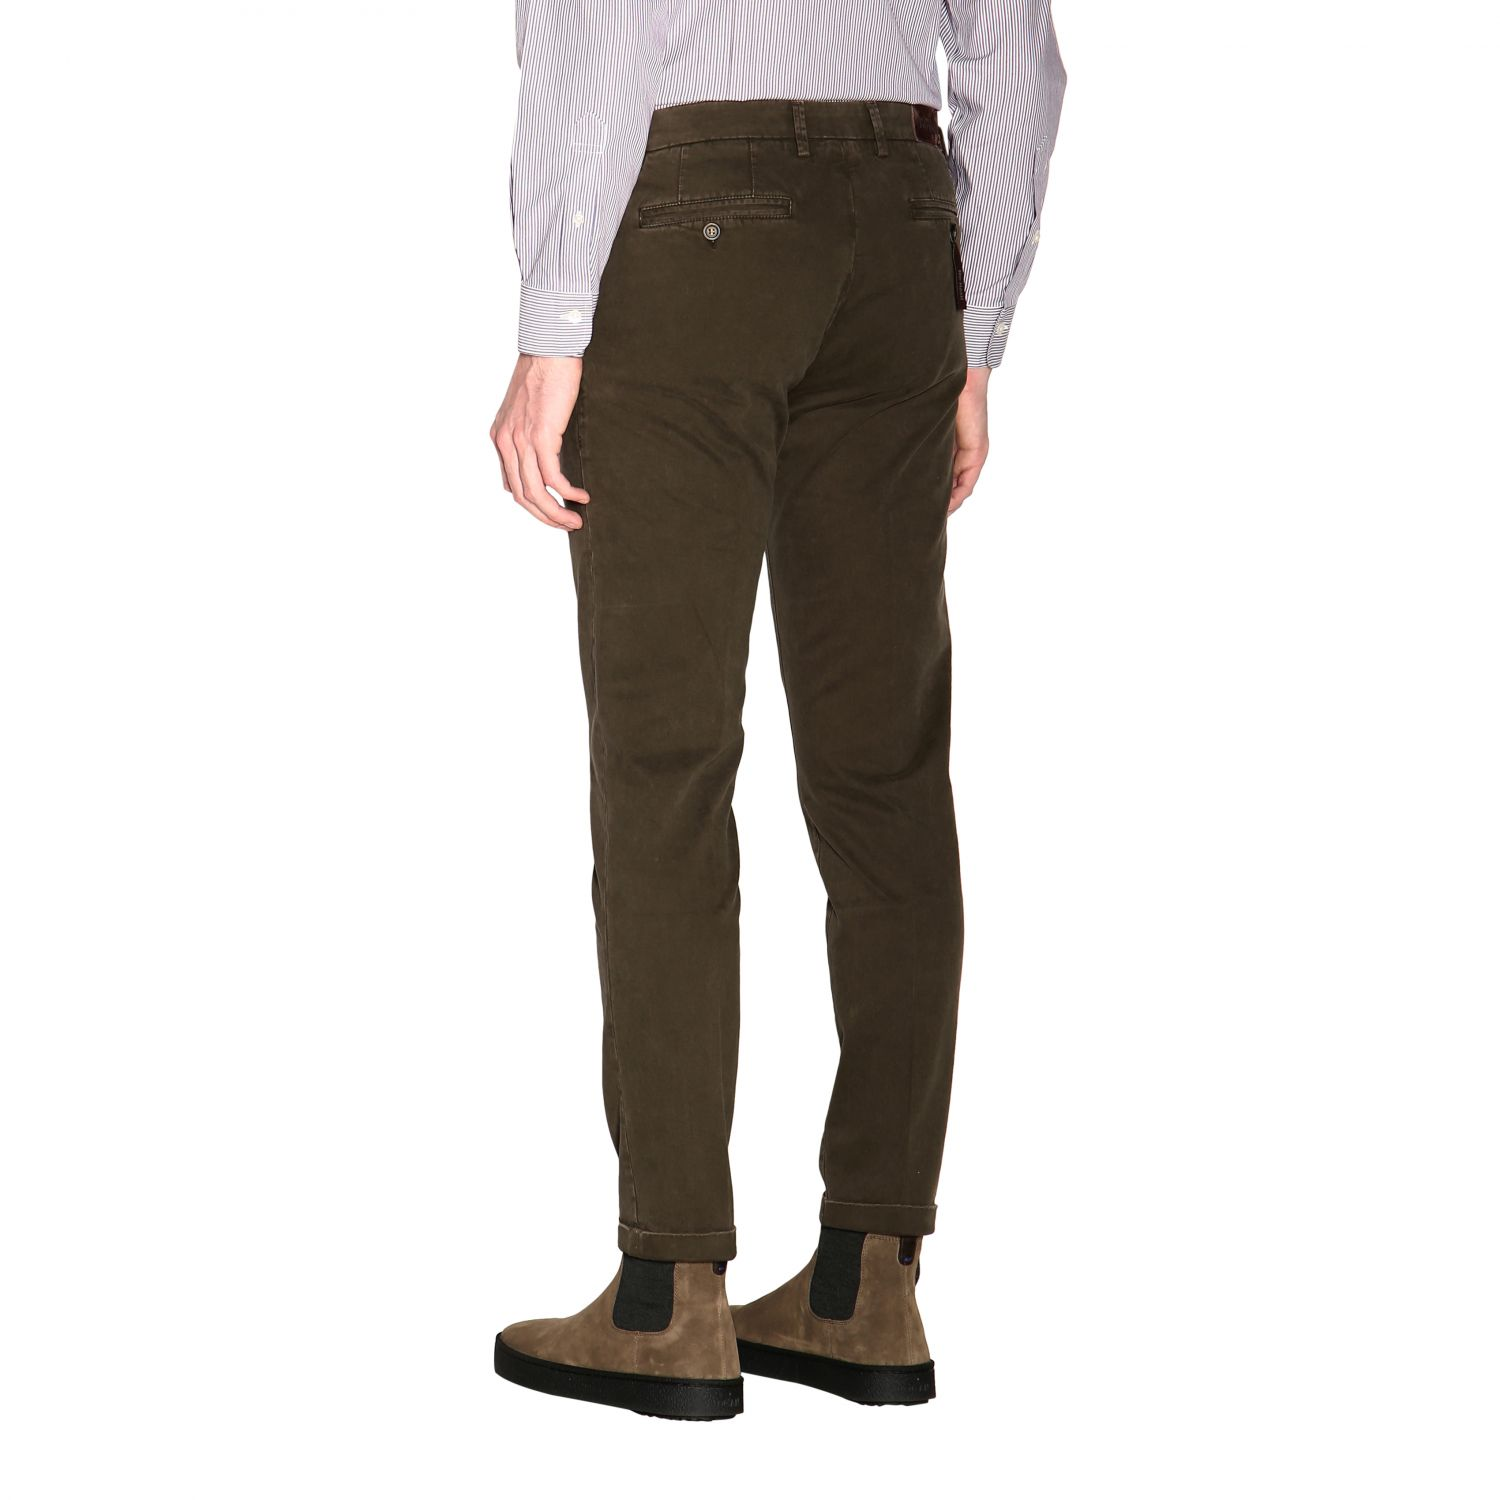 Pants men Re-hash green 3